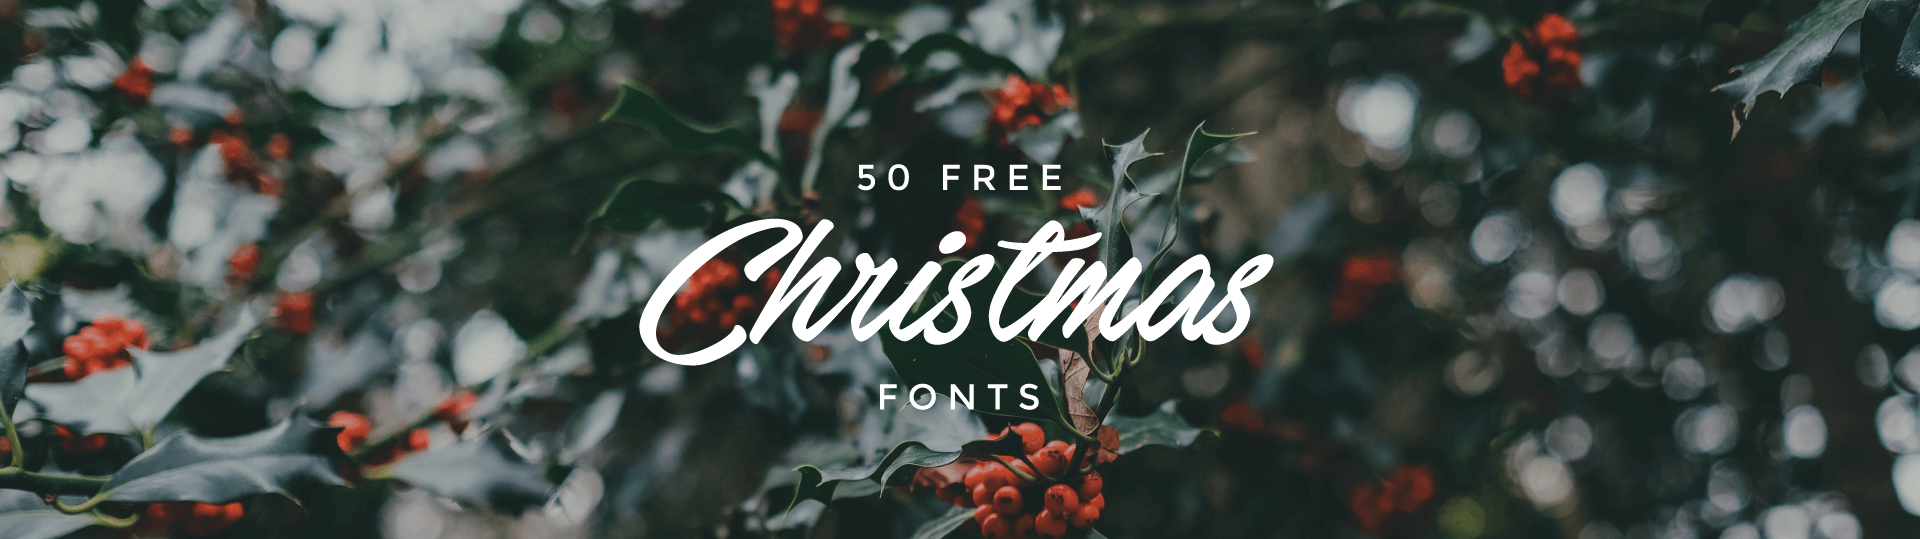 60-Free-Christmas-Fonts-To-Give-Your-Designs-A-Holiday-Twist